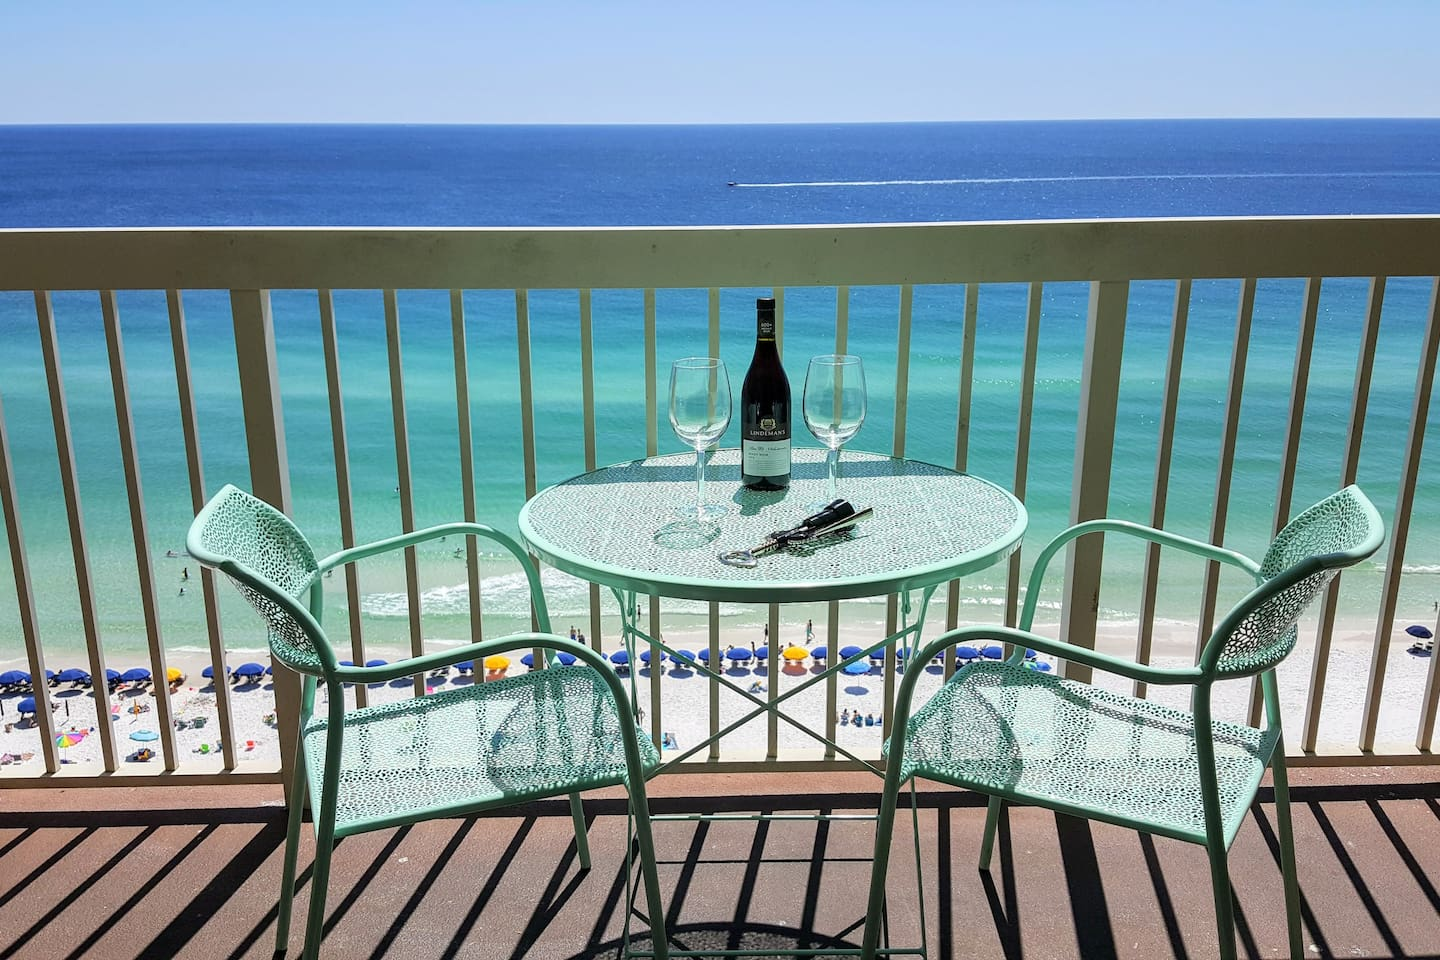 Unobstructed views of the ocean helps you relax and recharge